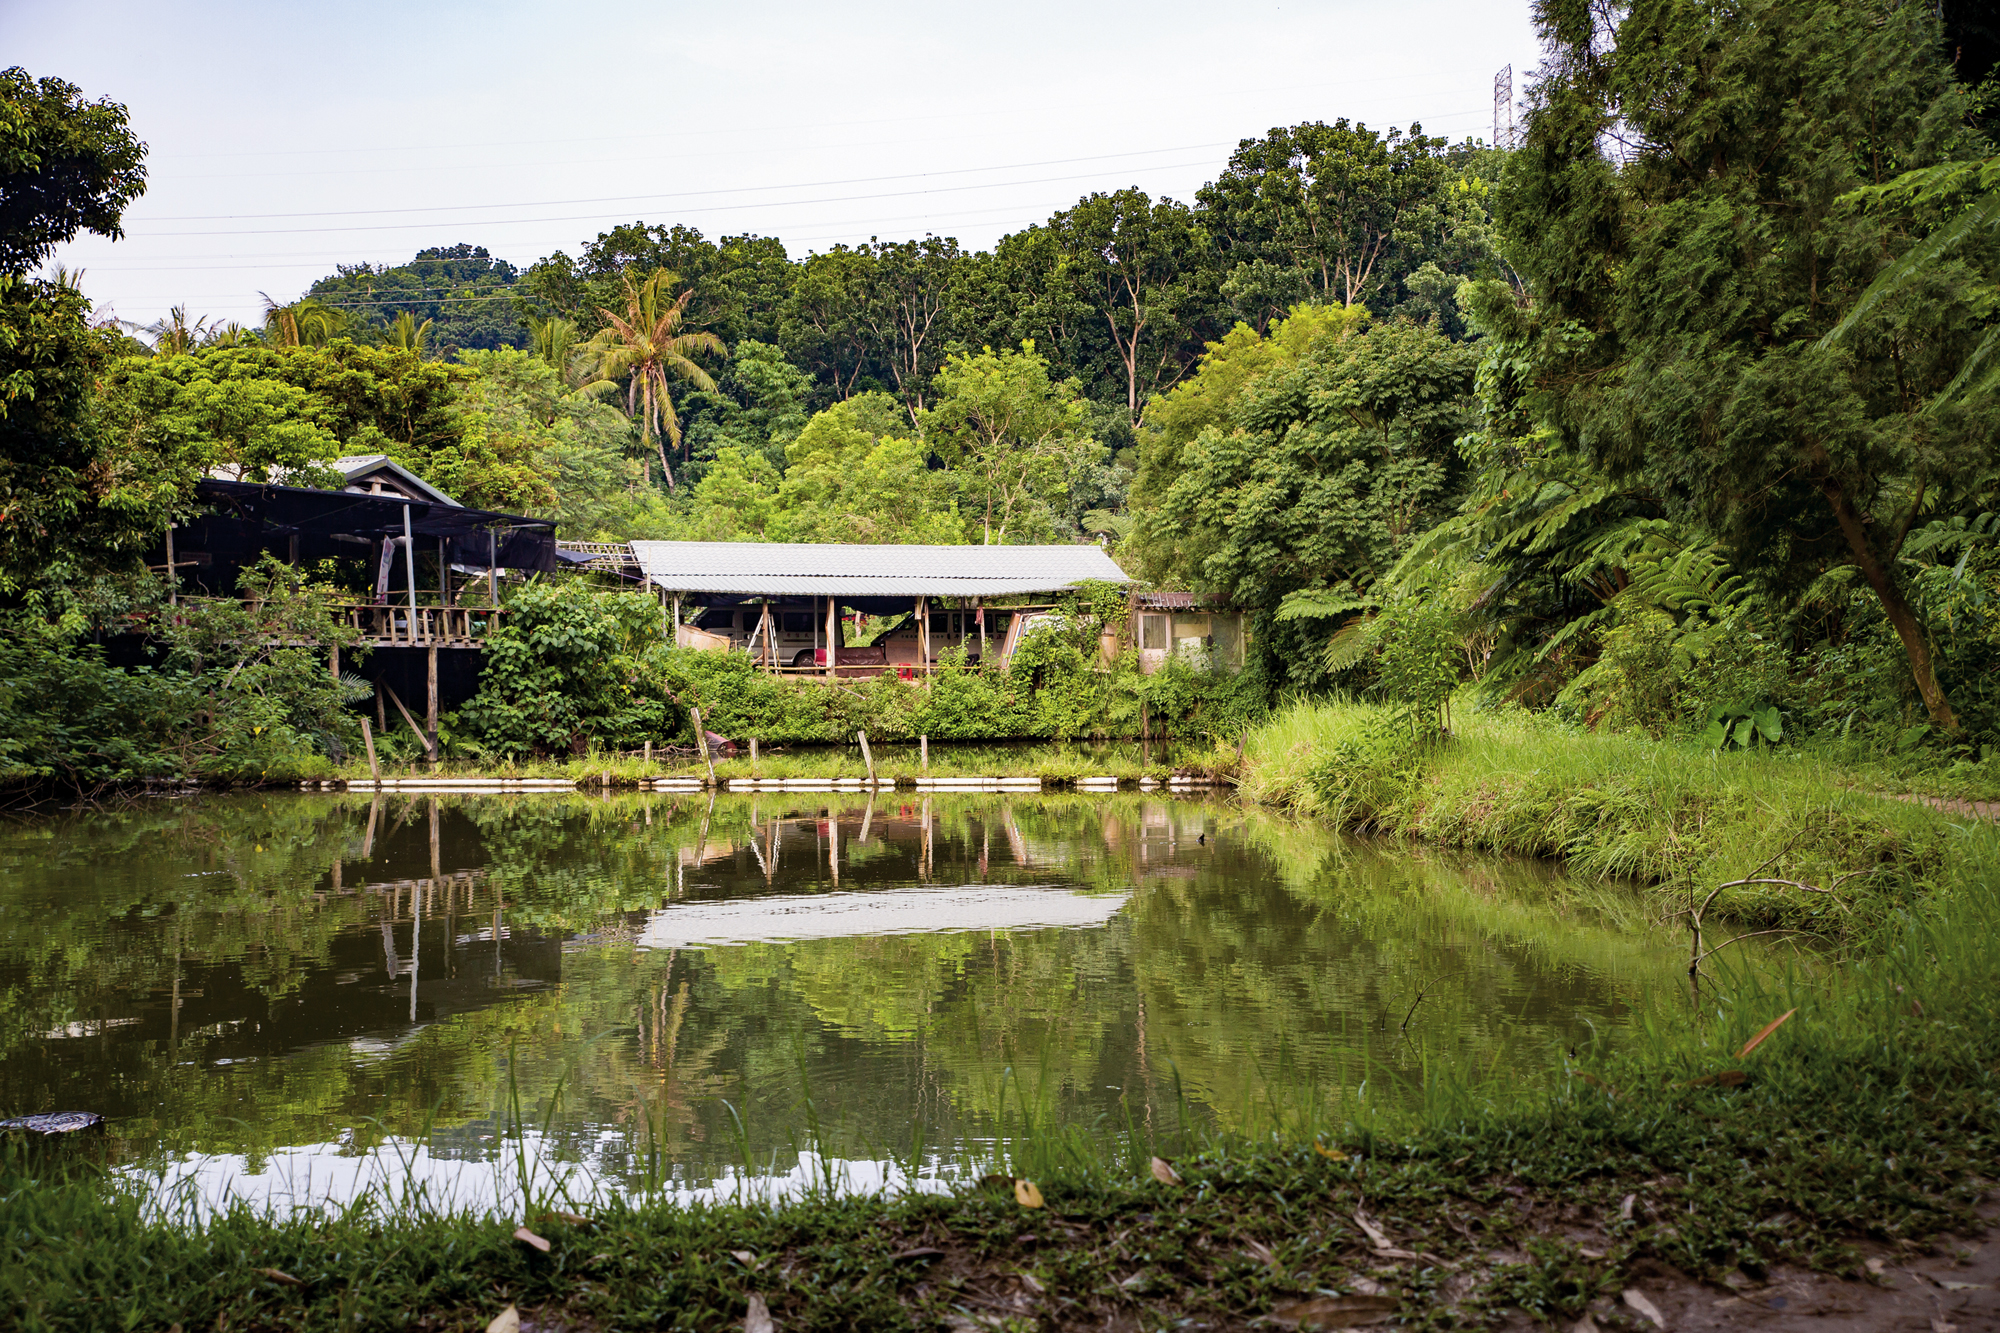 The Green Valley Siraya Park, at Jiucengling in the Xinhua District of Tainan City, is home to Cheng-hiong Talavan, founder of the Siraya Culture Association. It is also the main base of the movement for the Siraya to be officially recognized as one of Taiwan's indigenous peoples.